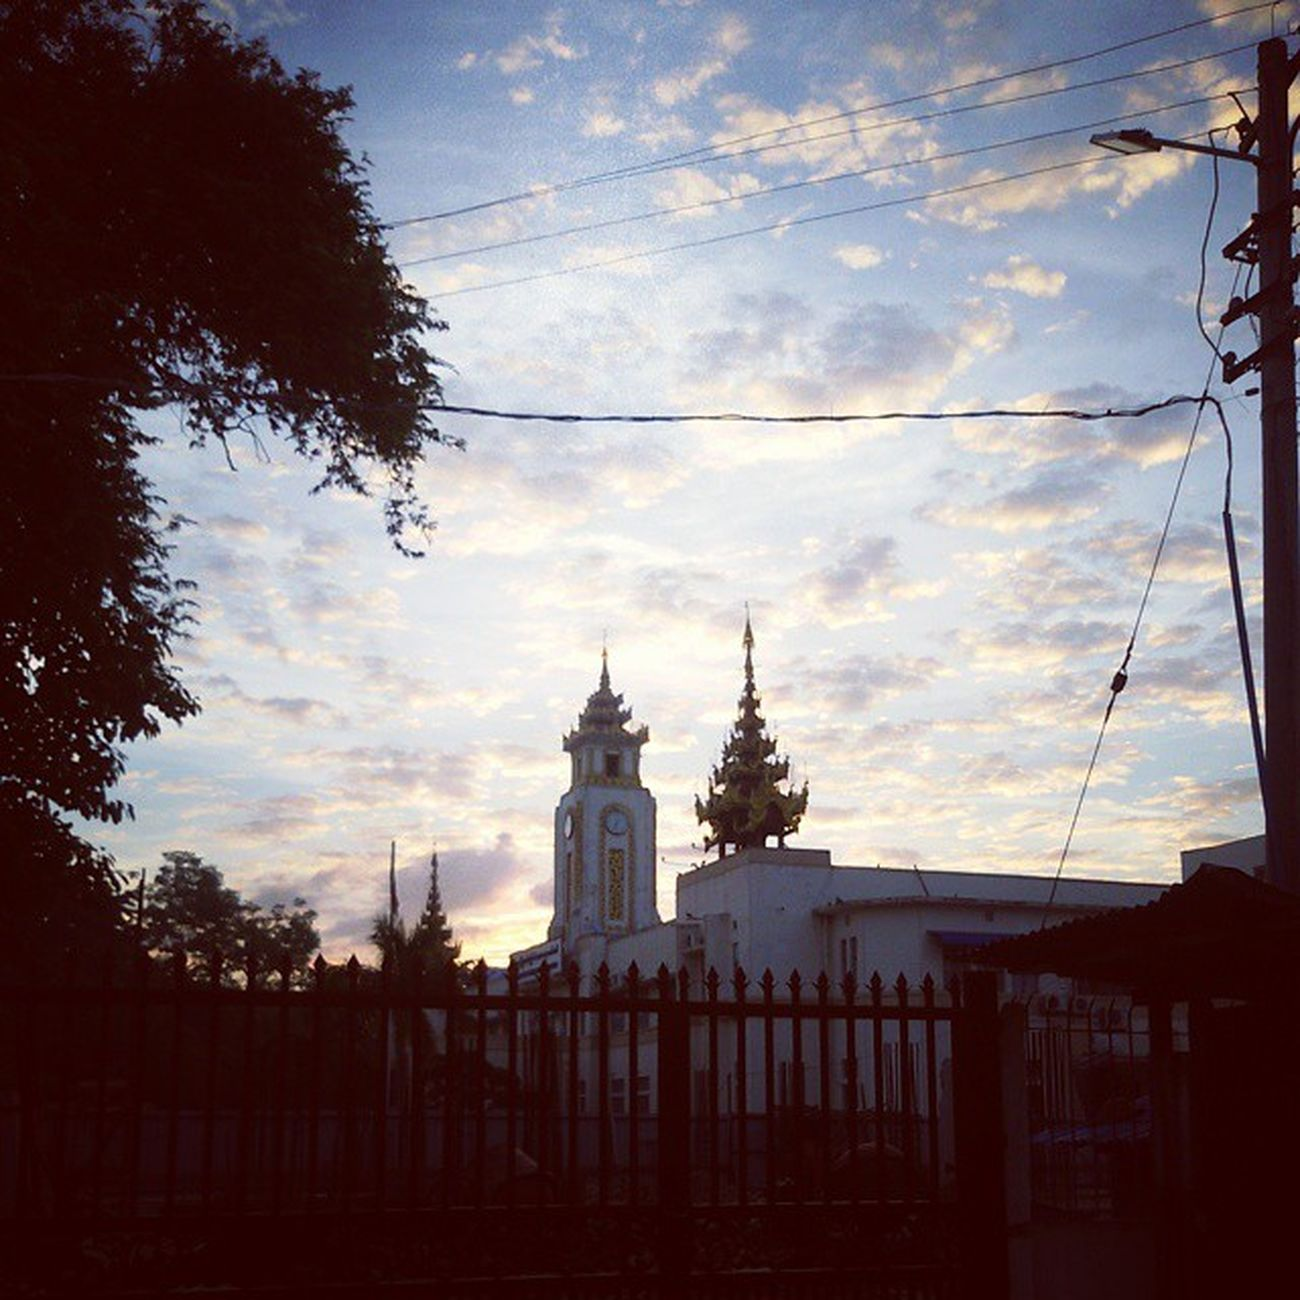 Morning igers!! MCDC Mandalay_city_development_committee Mandalaycitydevelopmentcommittee Office Building Mandalay Myanmar Burma Igers Igersmyanmar Igersmandalay Vscocam Vscomyanmar